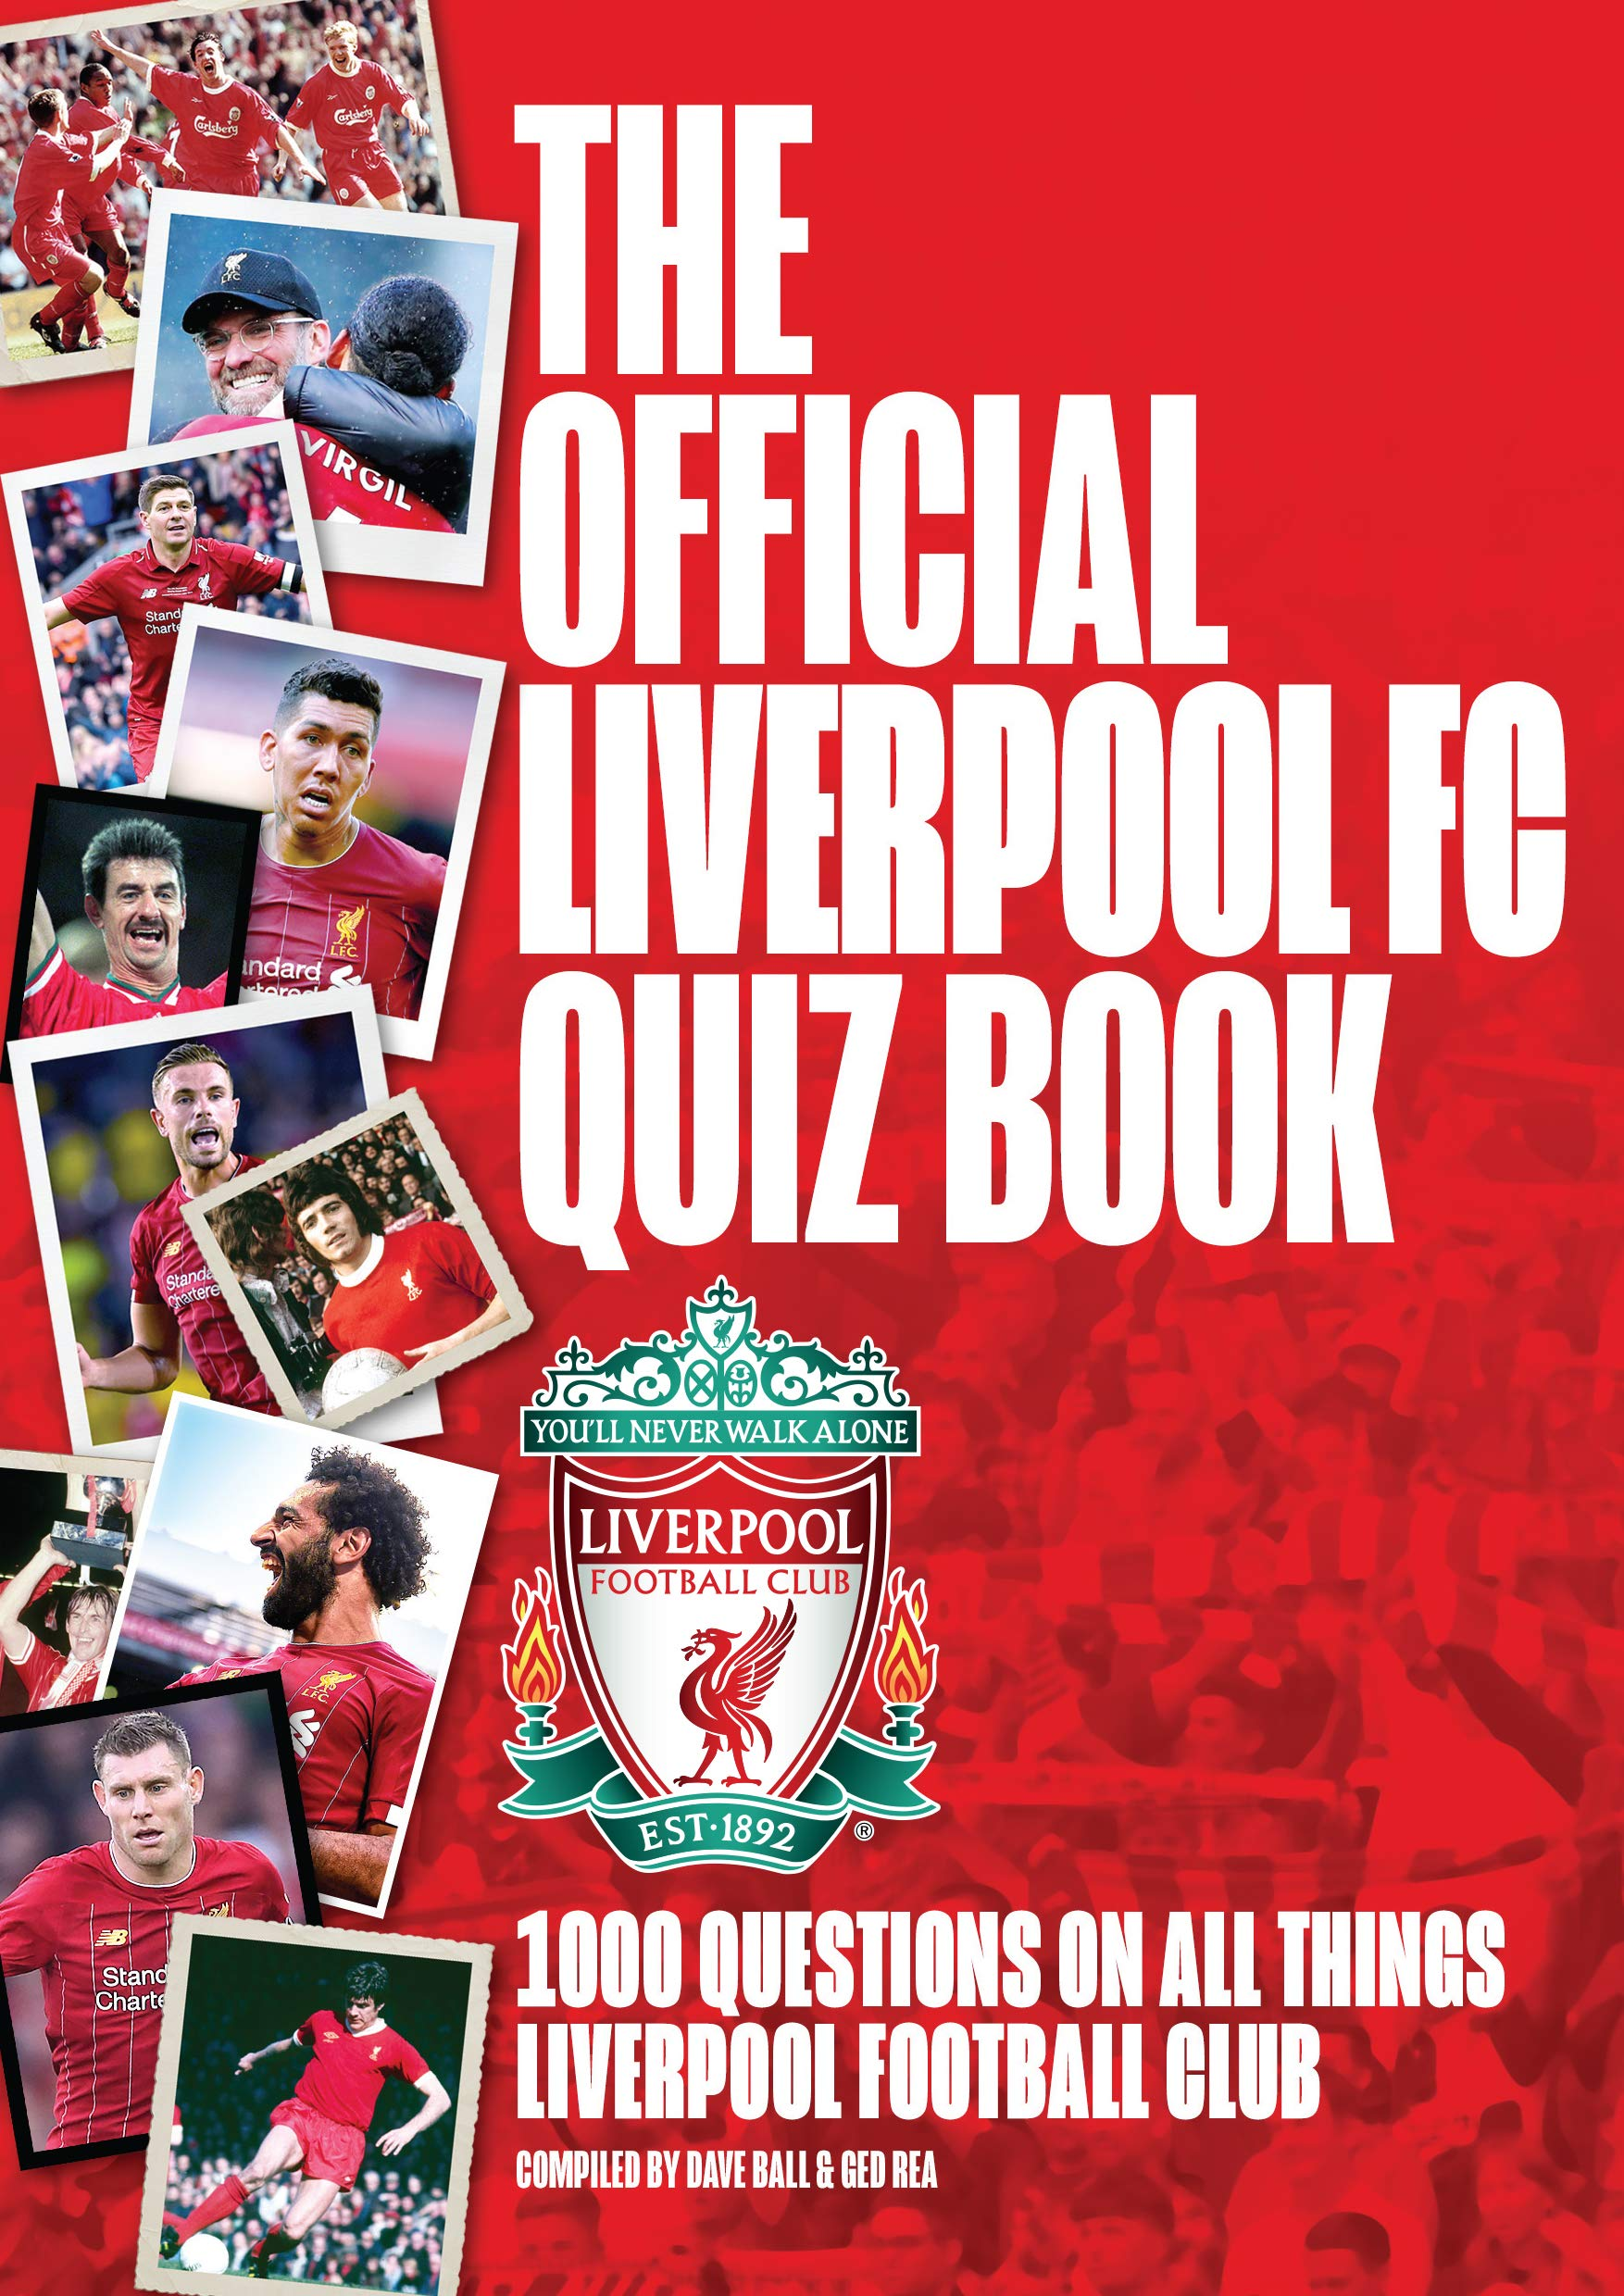 Image OfThe Official Liverpool FC Quiz Book: 1,000 Questions On All Things Liverpool Football Club (English Edition)